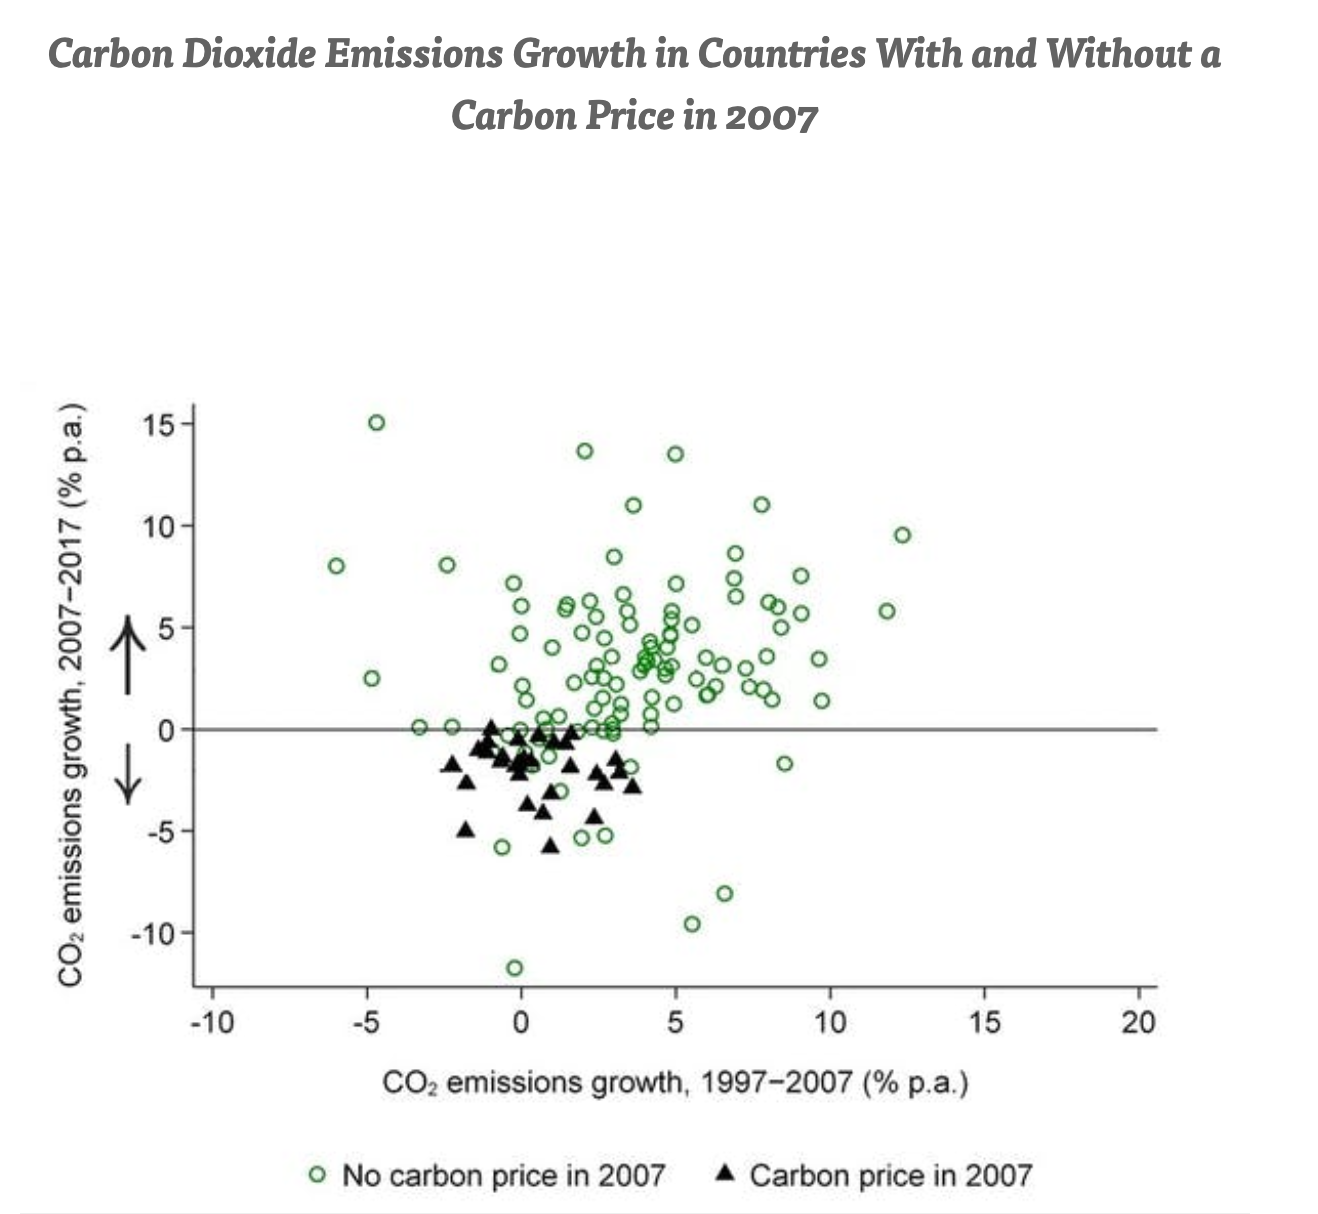 Carbon Dioxide Emissions Growth in Countries With and Without a Carbon Price in 2007